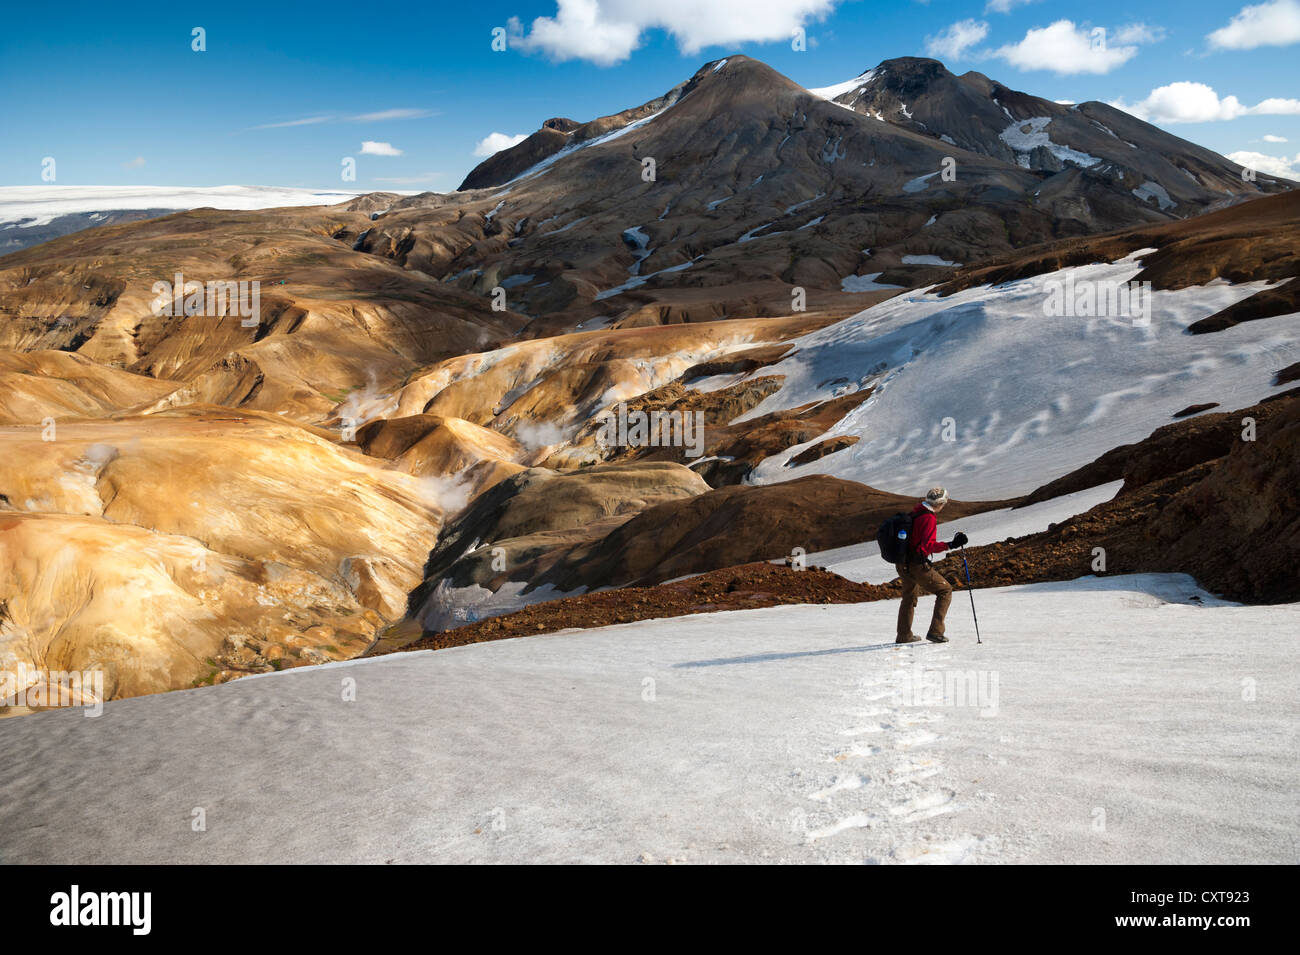 Hiker crossing the snowfield on a trail, snow-capped Rhyolite Mountains, Hveradallir high temperature area, Kerlingarfjoell - Stock Image